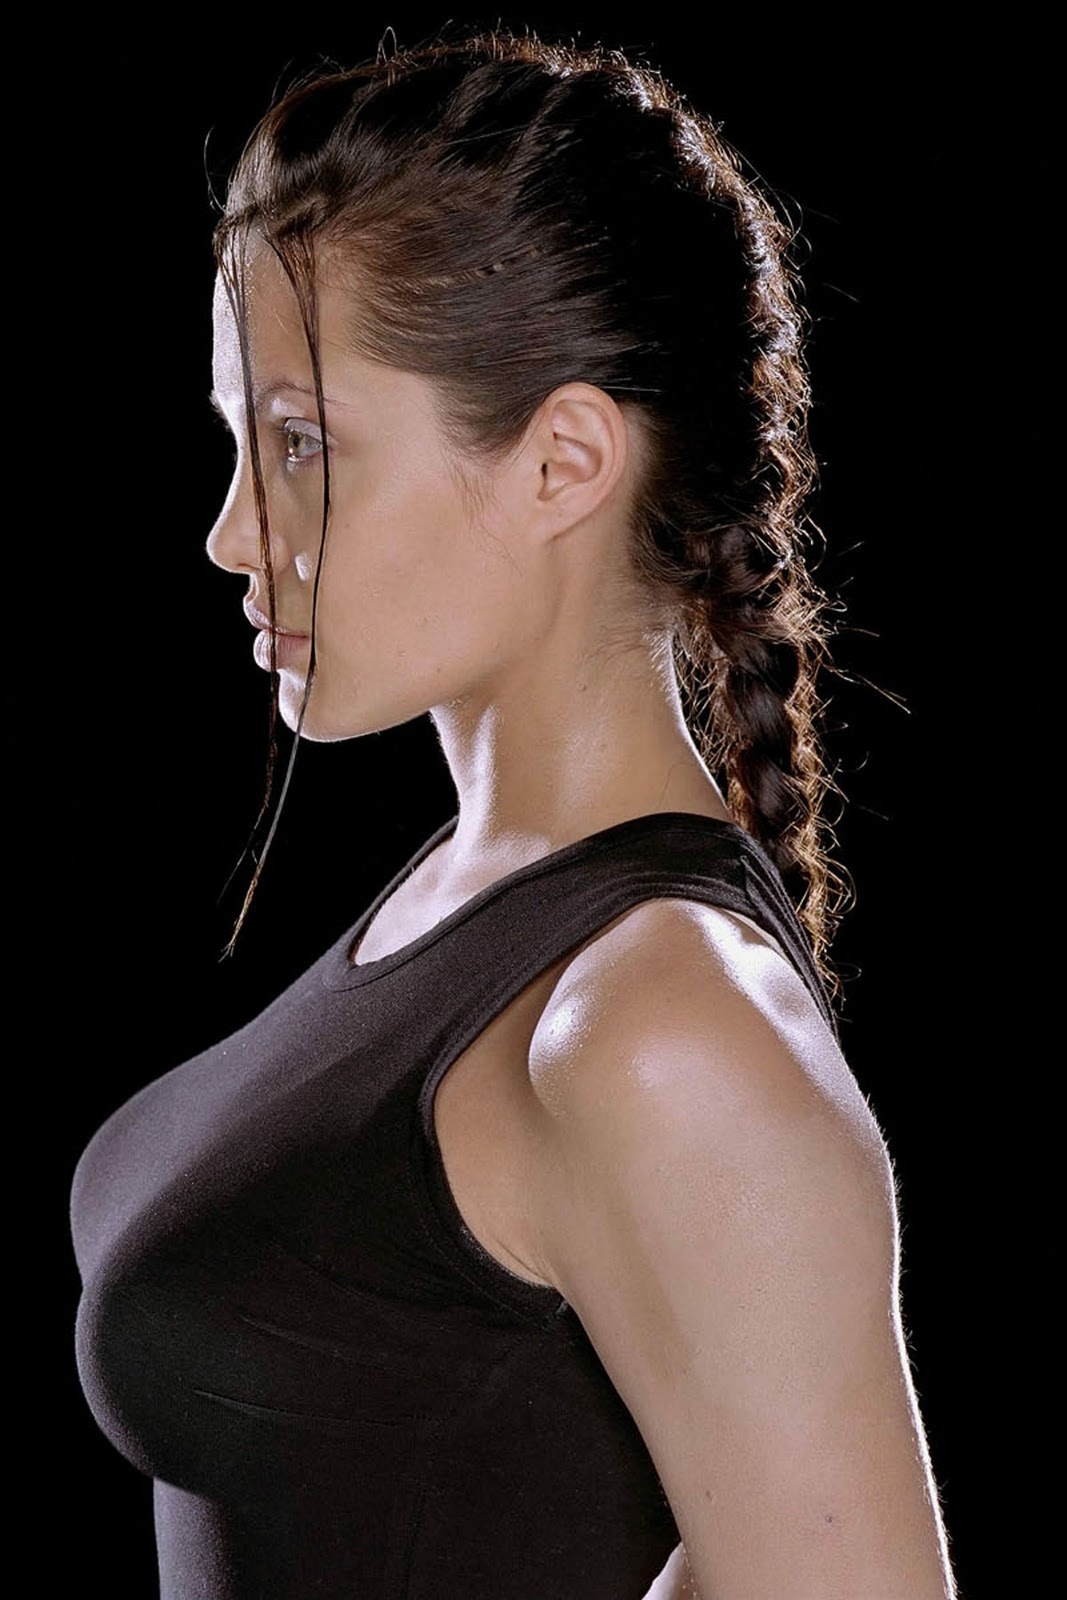 Angelina Jolie Bra Size And Measurements: Movies, Covers ...